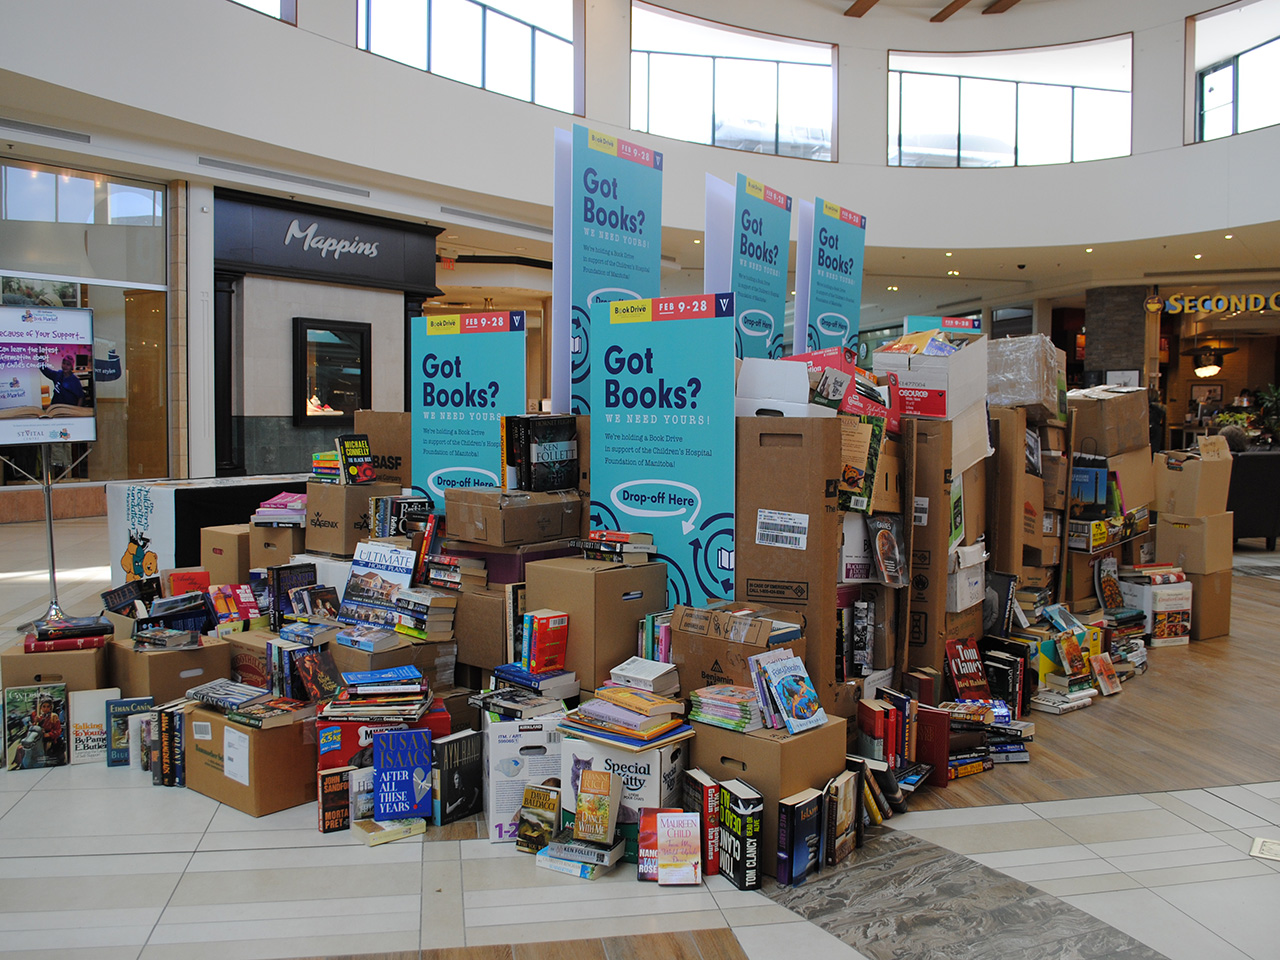 St. Vital Centre's centre court full of books for the book drive. The books are piled high and in many boxes.